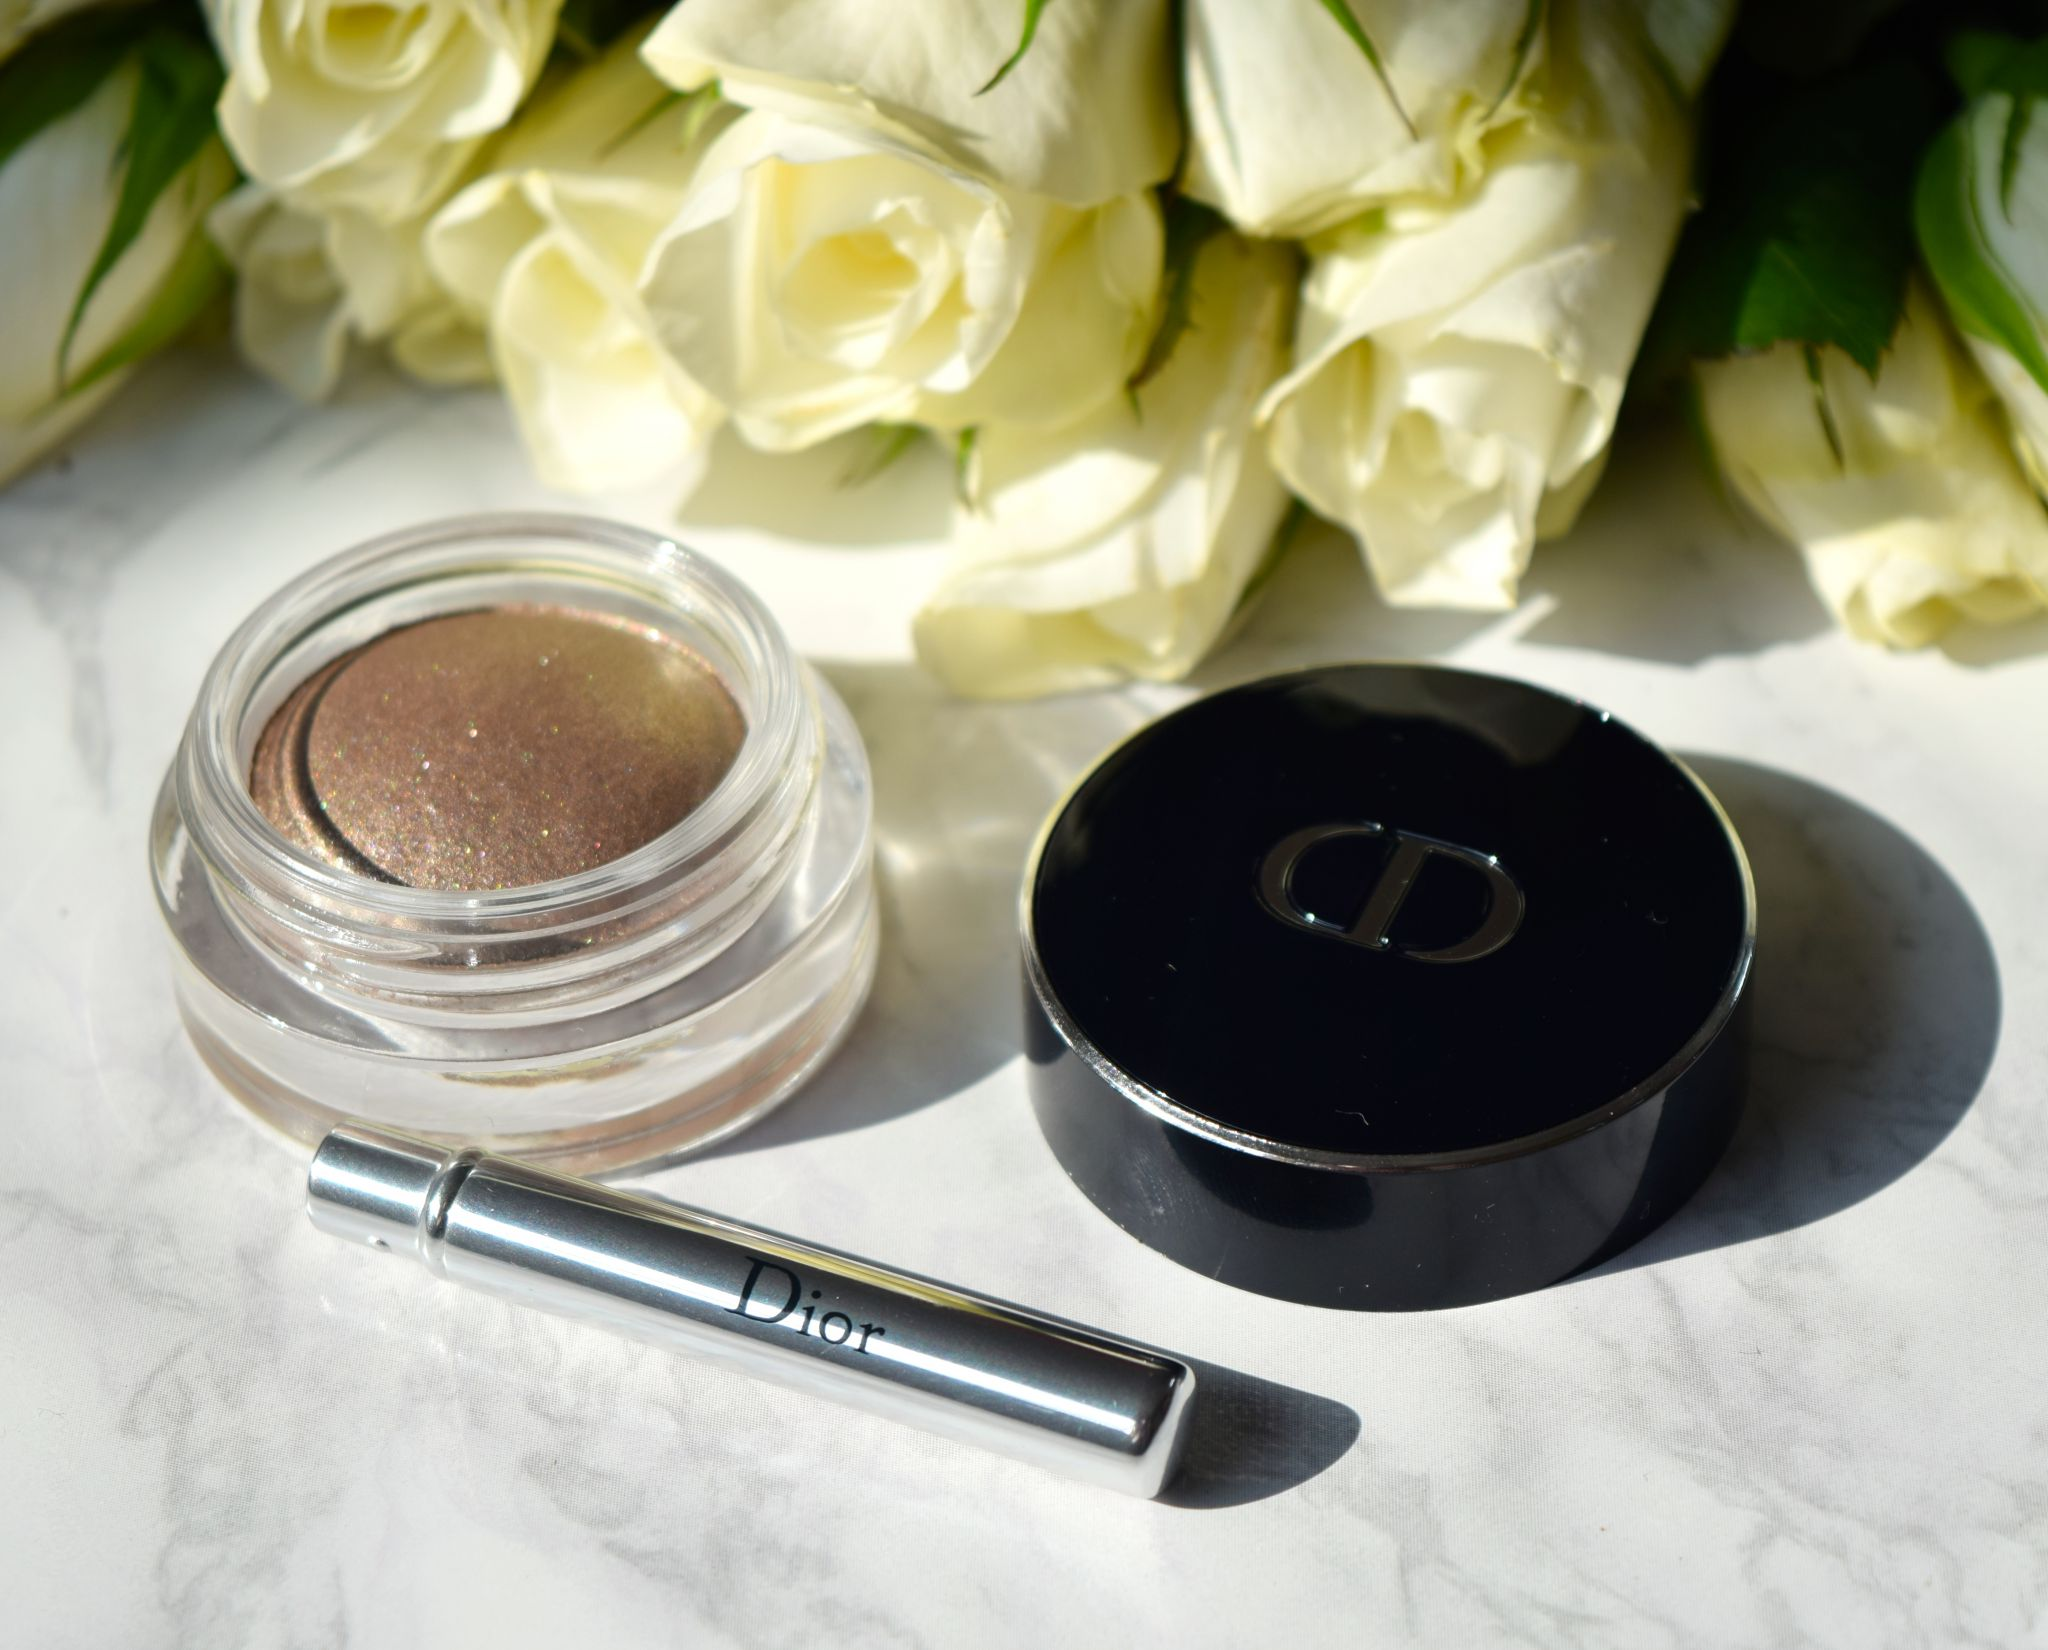 Dior Equinox Eyeshadow 3